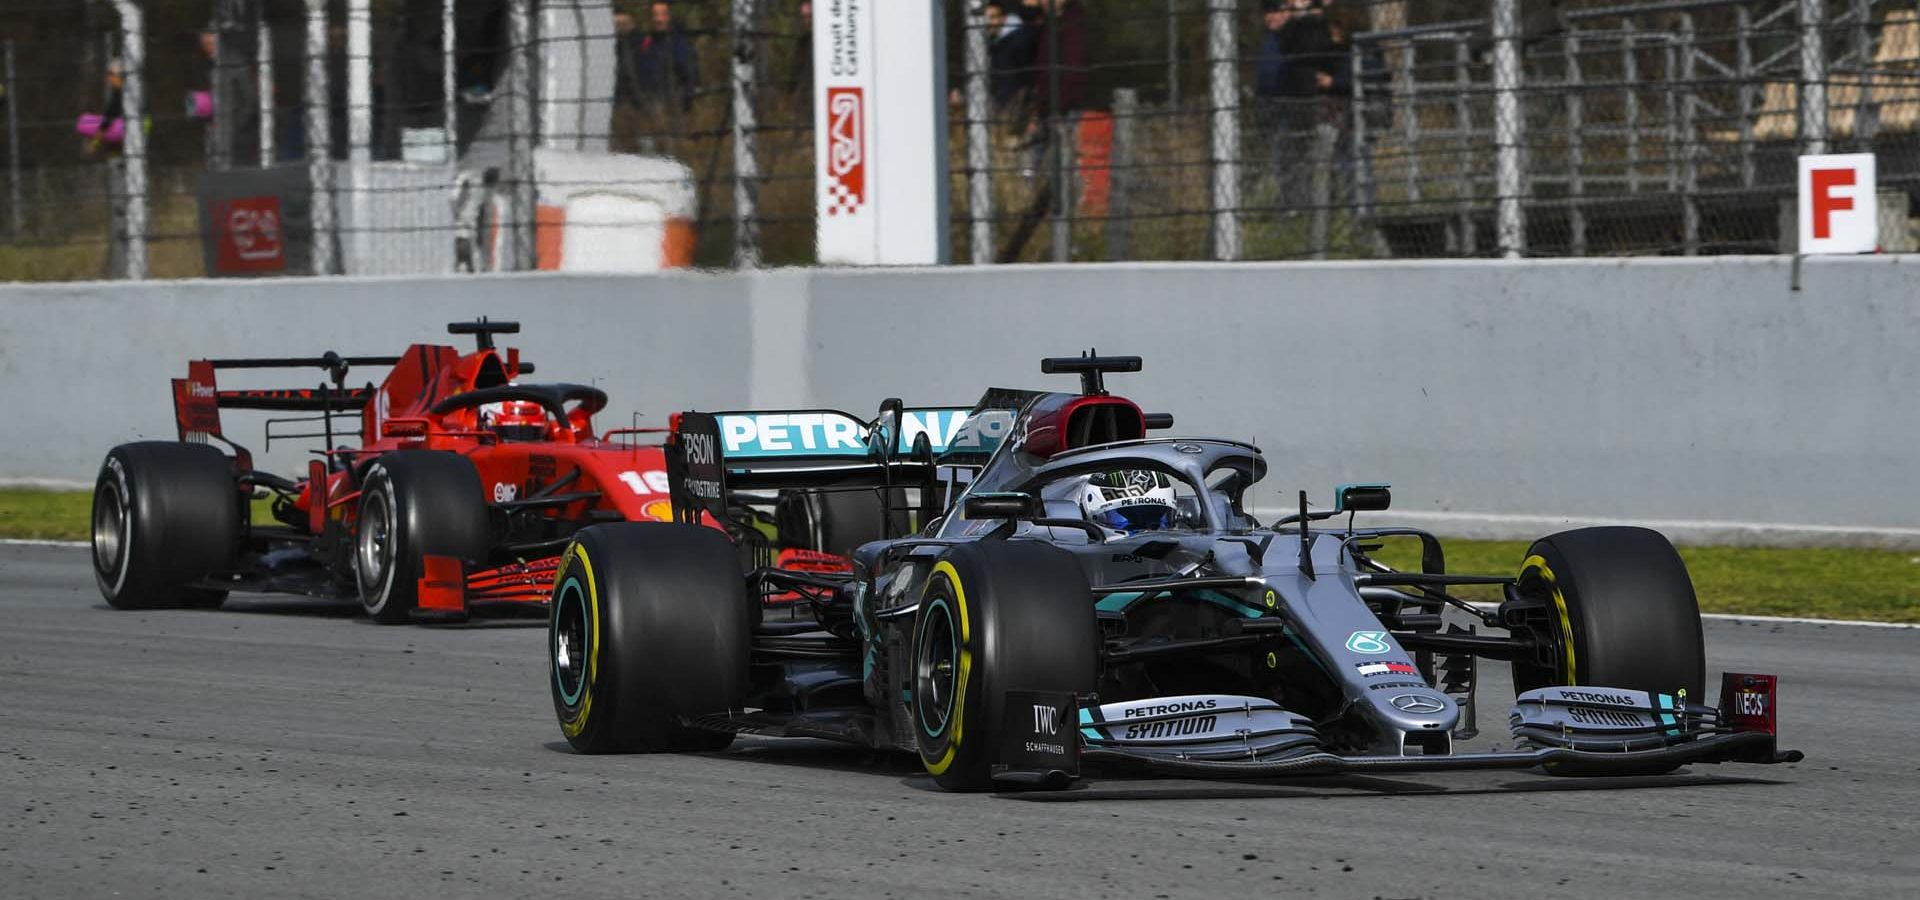 CIRCUIT DE BARCELONA-CATALUNYA, SPAIN - FEBRUARY 28: Valtteri Bottas, Mercedes F1 W11 EQ Performance, leads Charles Leclerc, Ferrari SF1000 during the Barcelona February testing II at Circuit de Barcelona-Catalunya on February 28, 2020 in Circuit de Barcelona-Catalunya, Spain. (Photo by Mark Sutton / LAT Images)